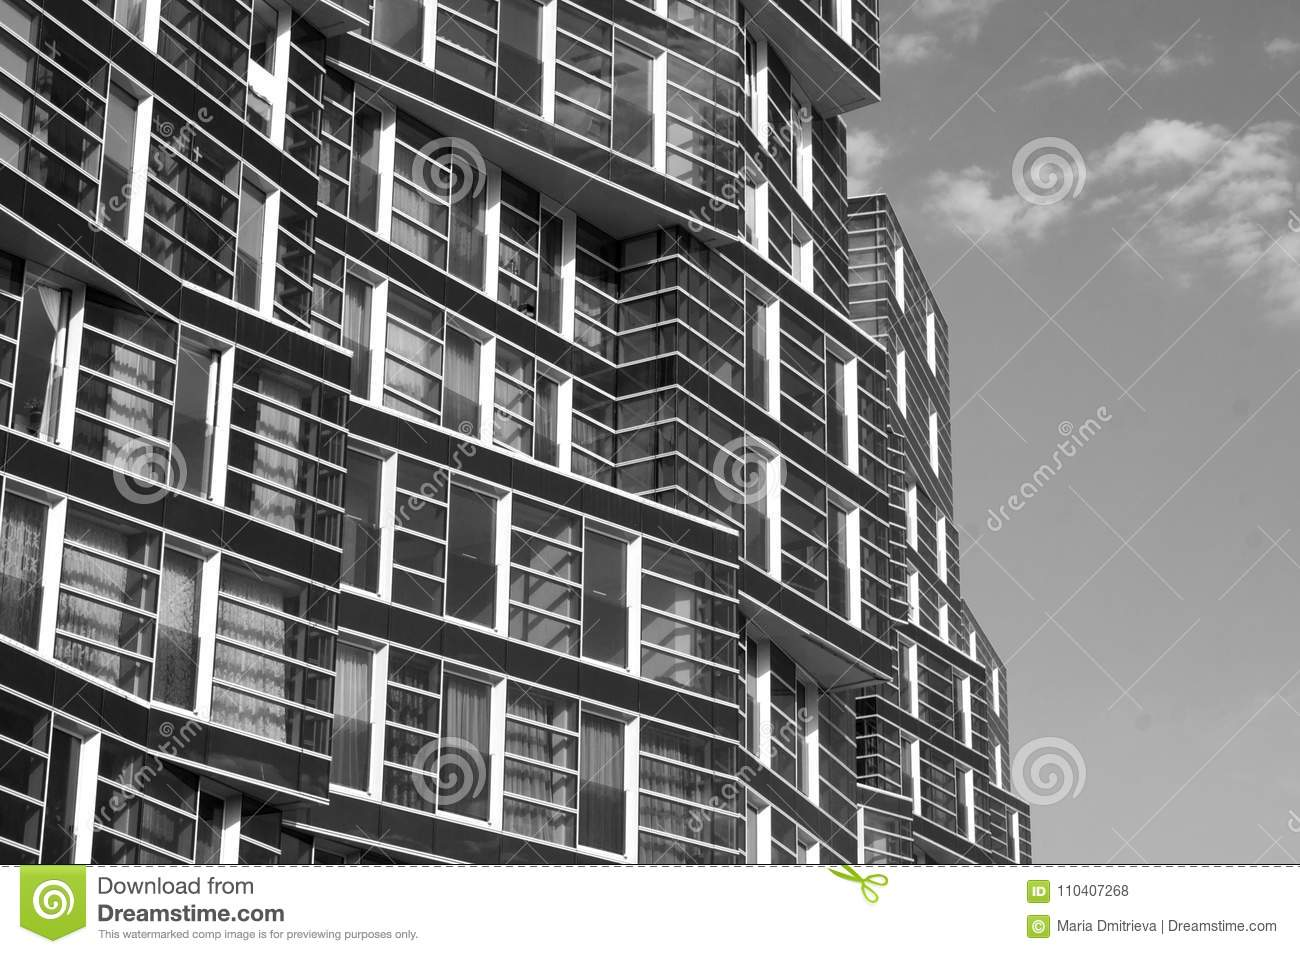 Black and white photograph of a building lots of windows